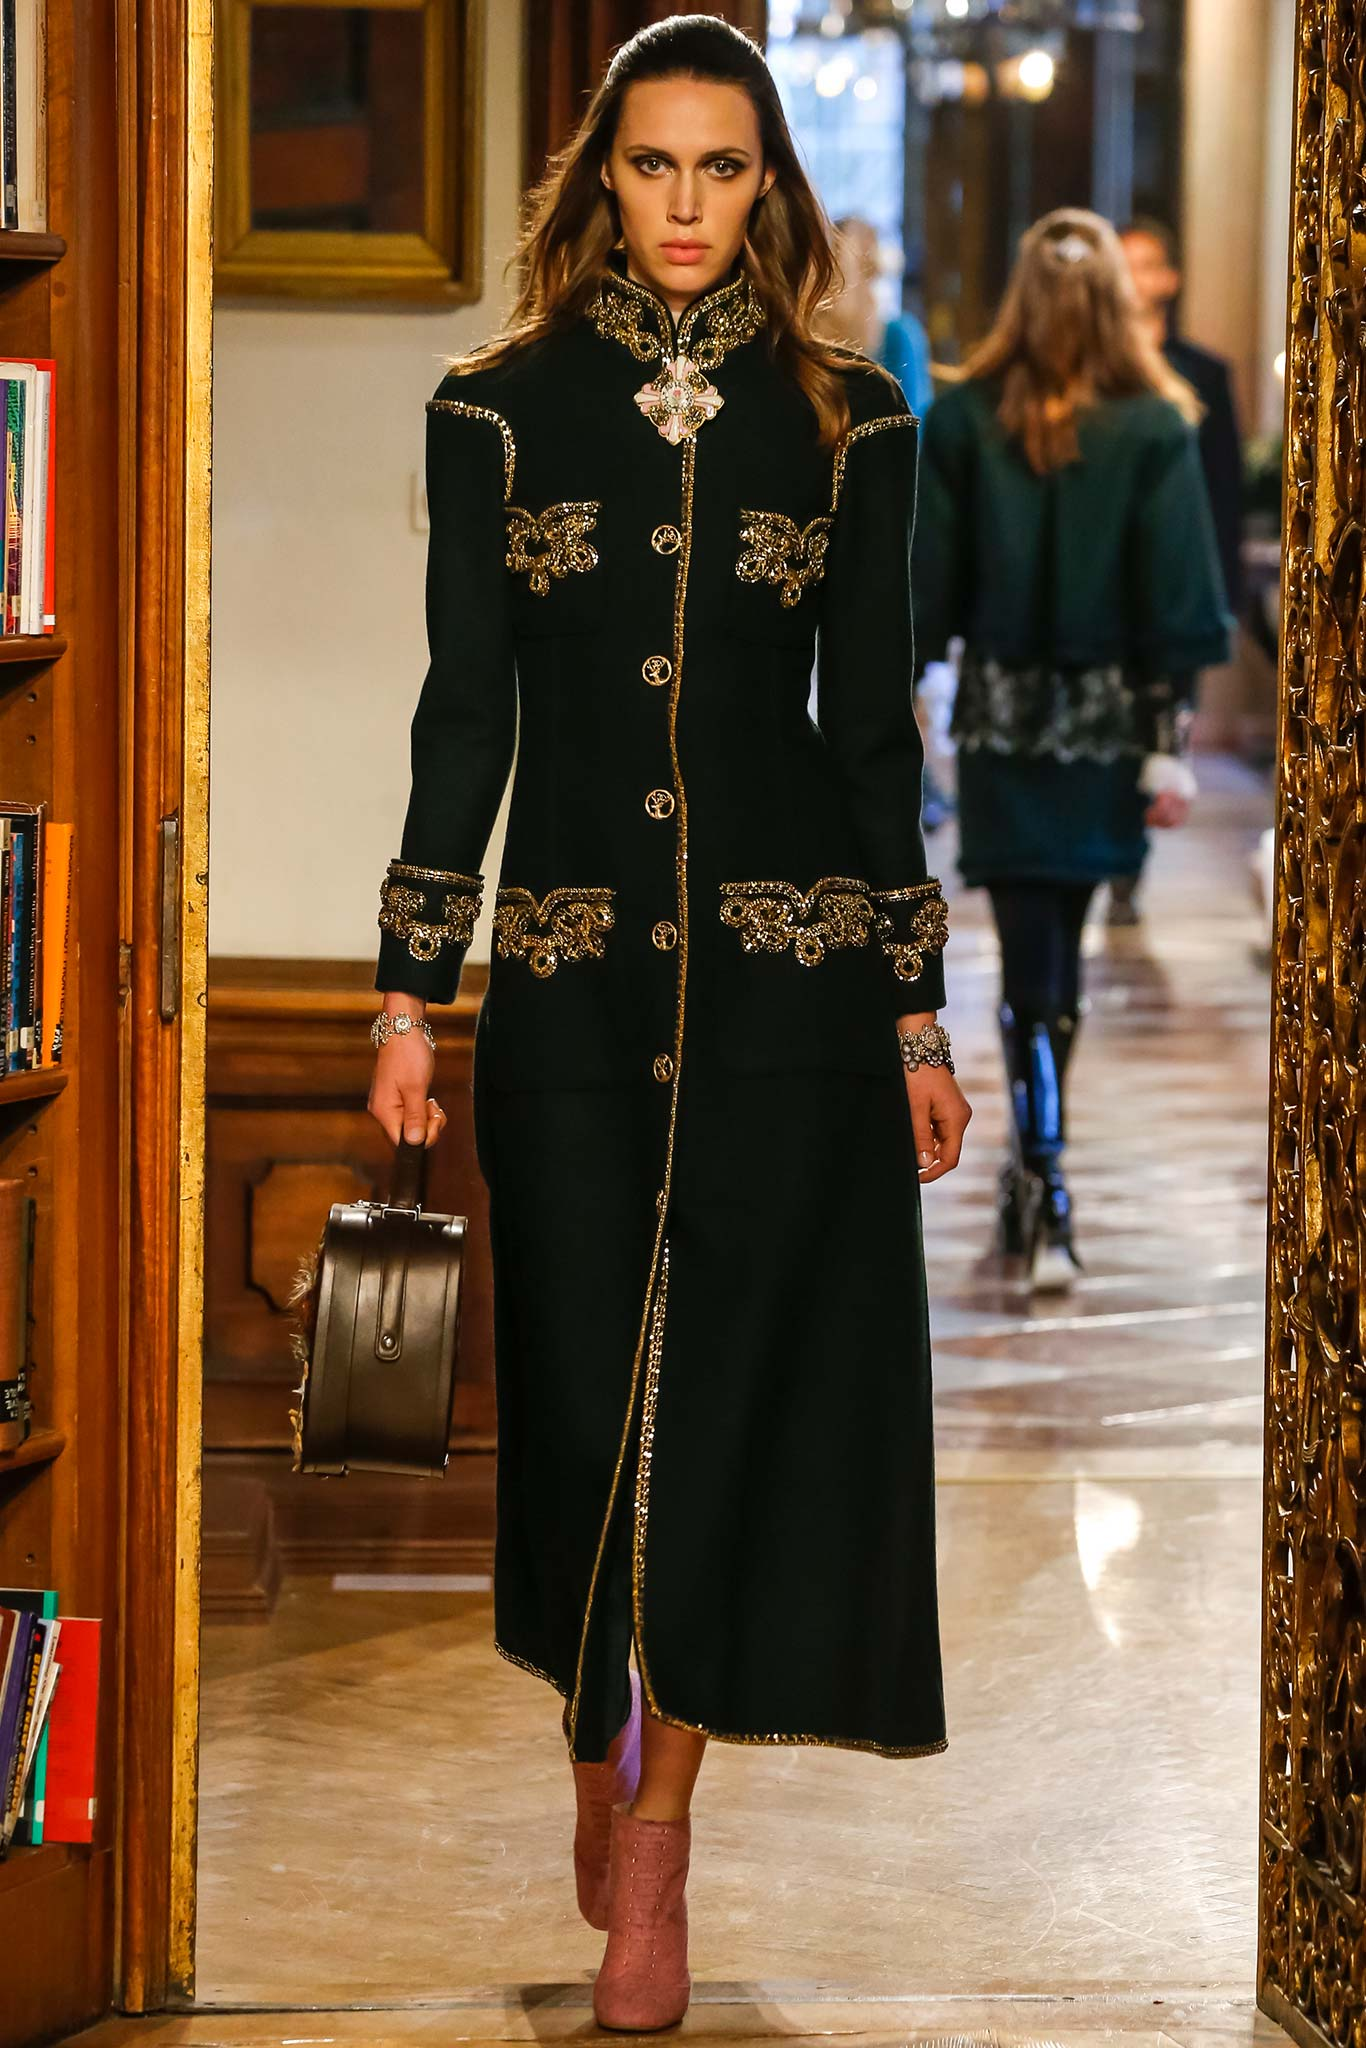 cb5bff02f7a Chanel Métiers d Art Pre-Fall 2015 Runway Collection